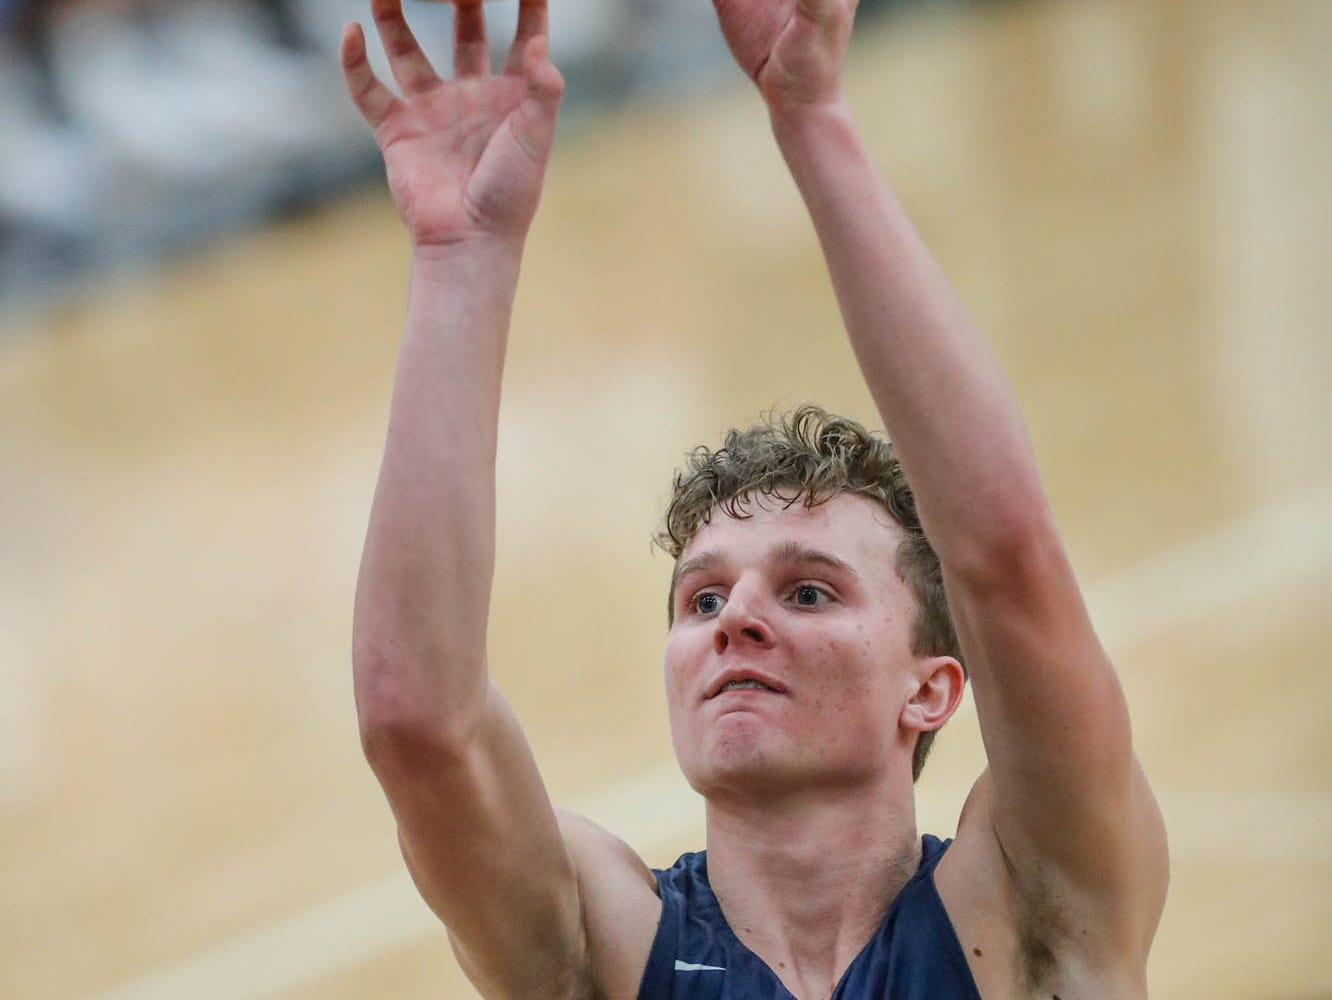 Plainfield High School's forward Cade East (10) shoots a free throw during a 2019 Hendricks County Basketball Tournament game between Plainfield High School and Cascade High School, held at Cascade on Wednesday, Jan. 2, 2019.